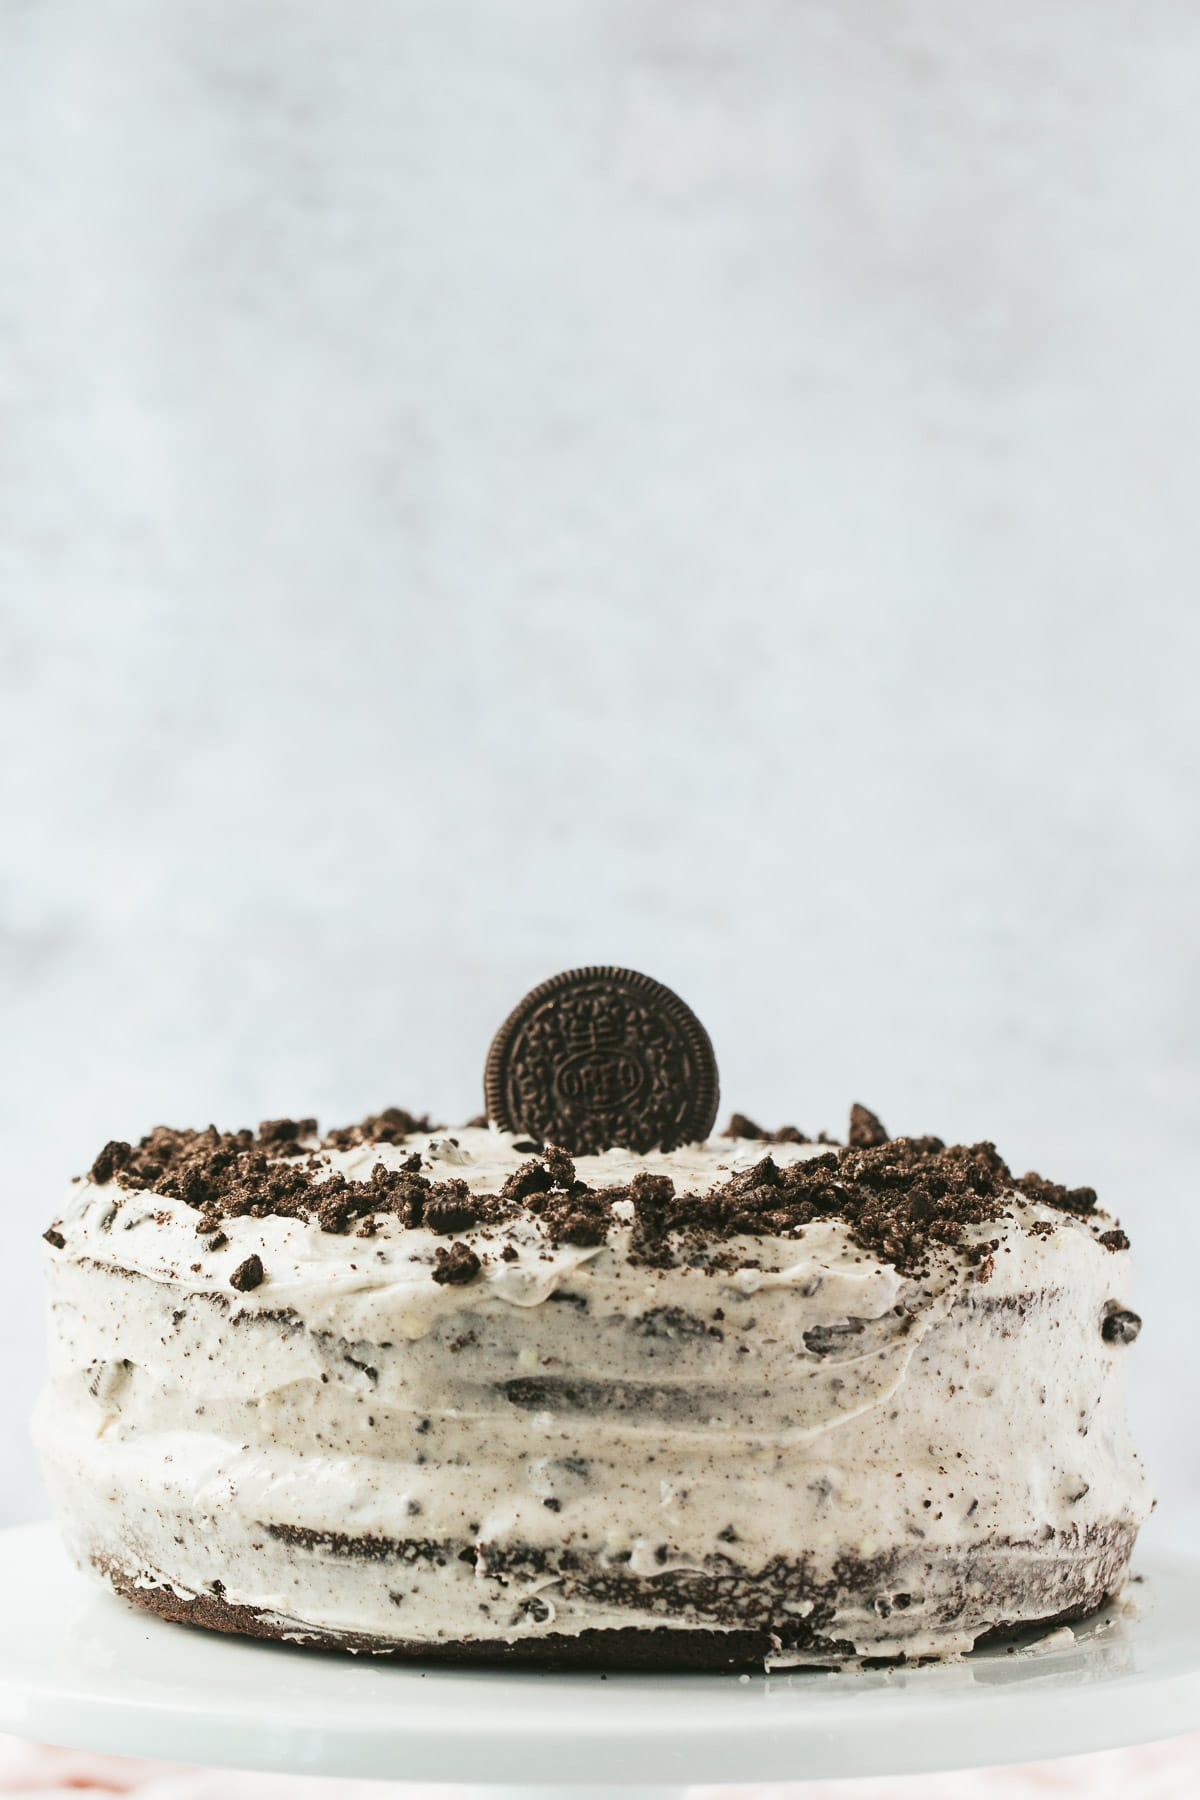 a two layer oreo cake with one oreo cookie on top and crumbs around the sides. A light background.